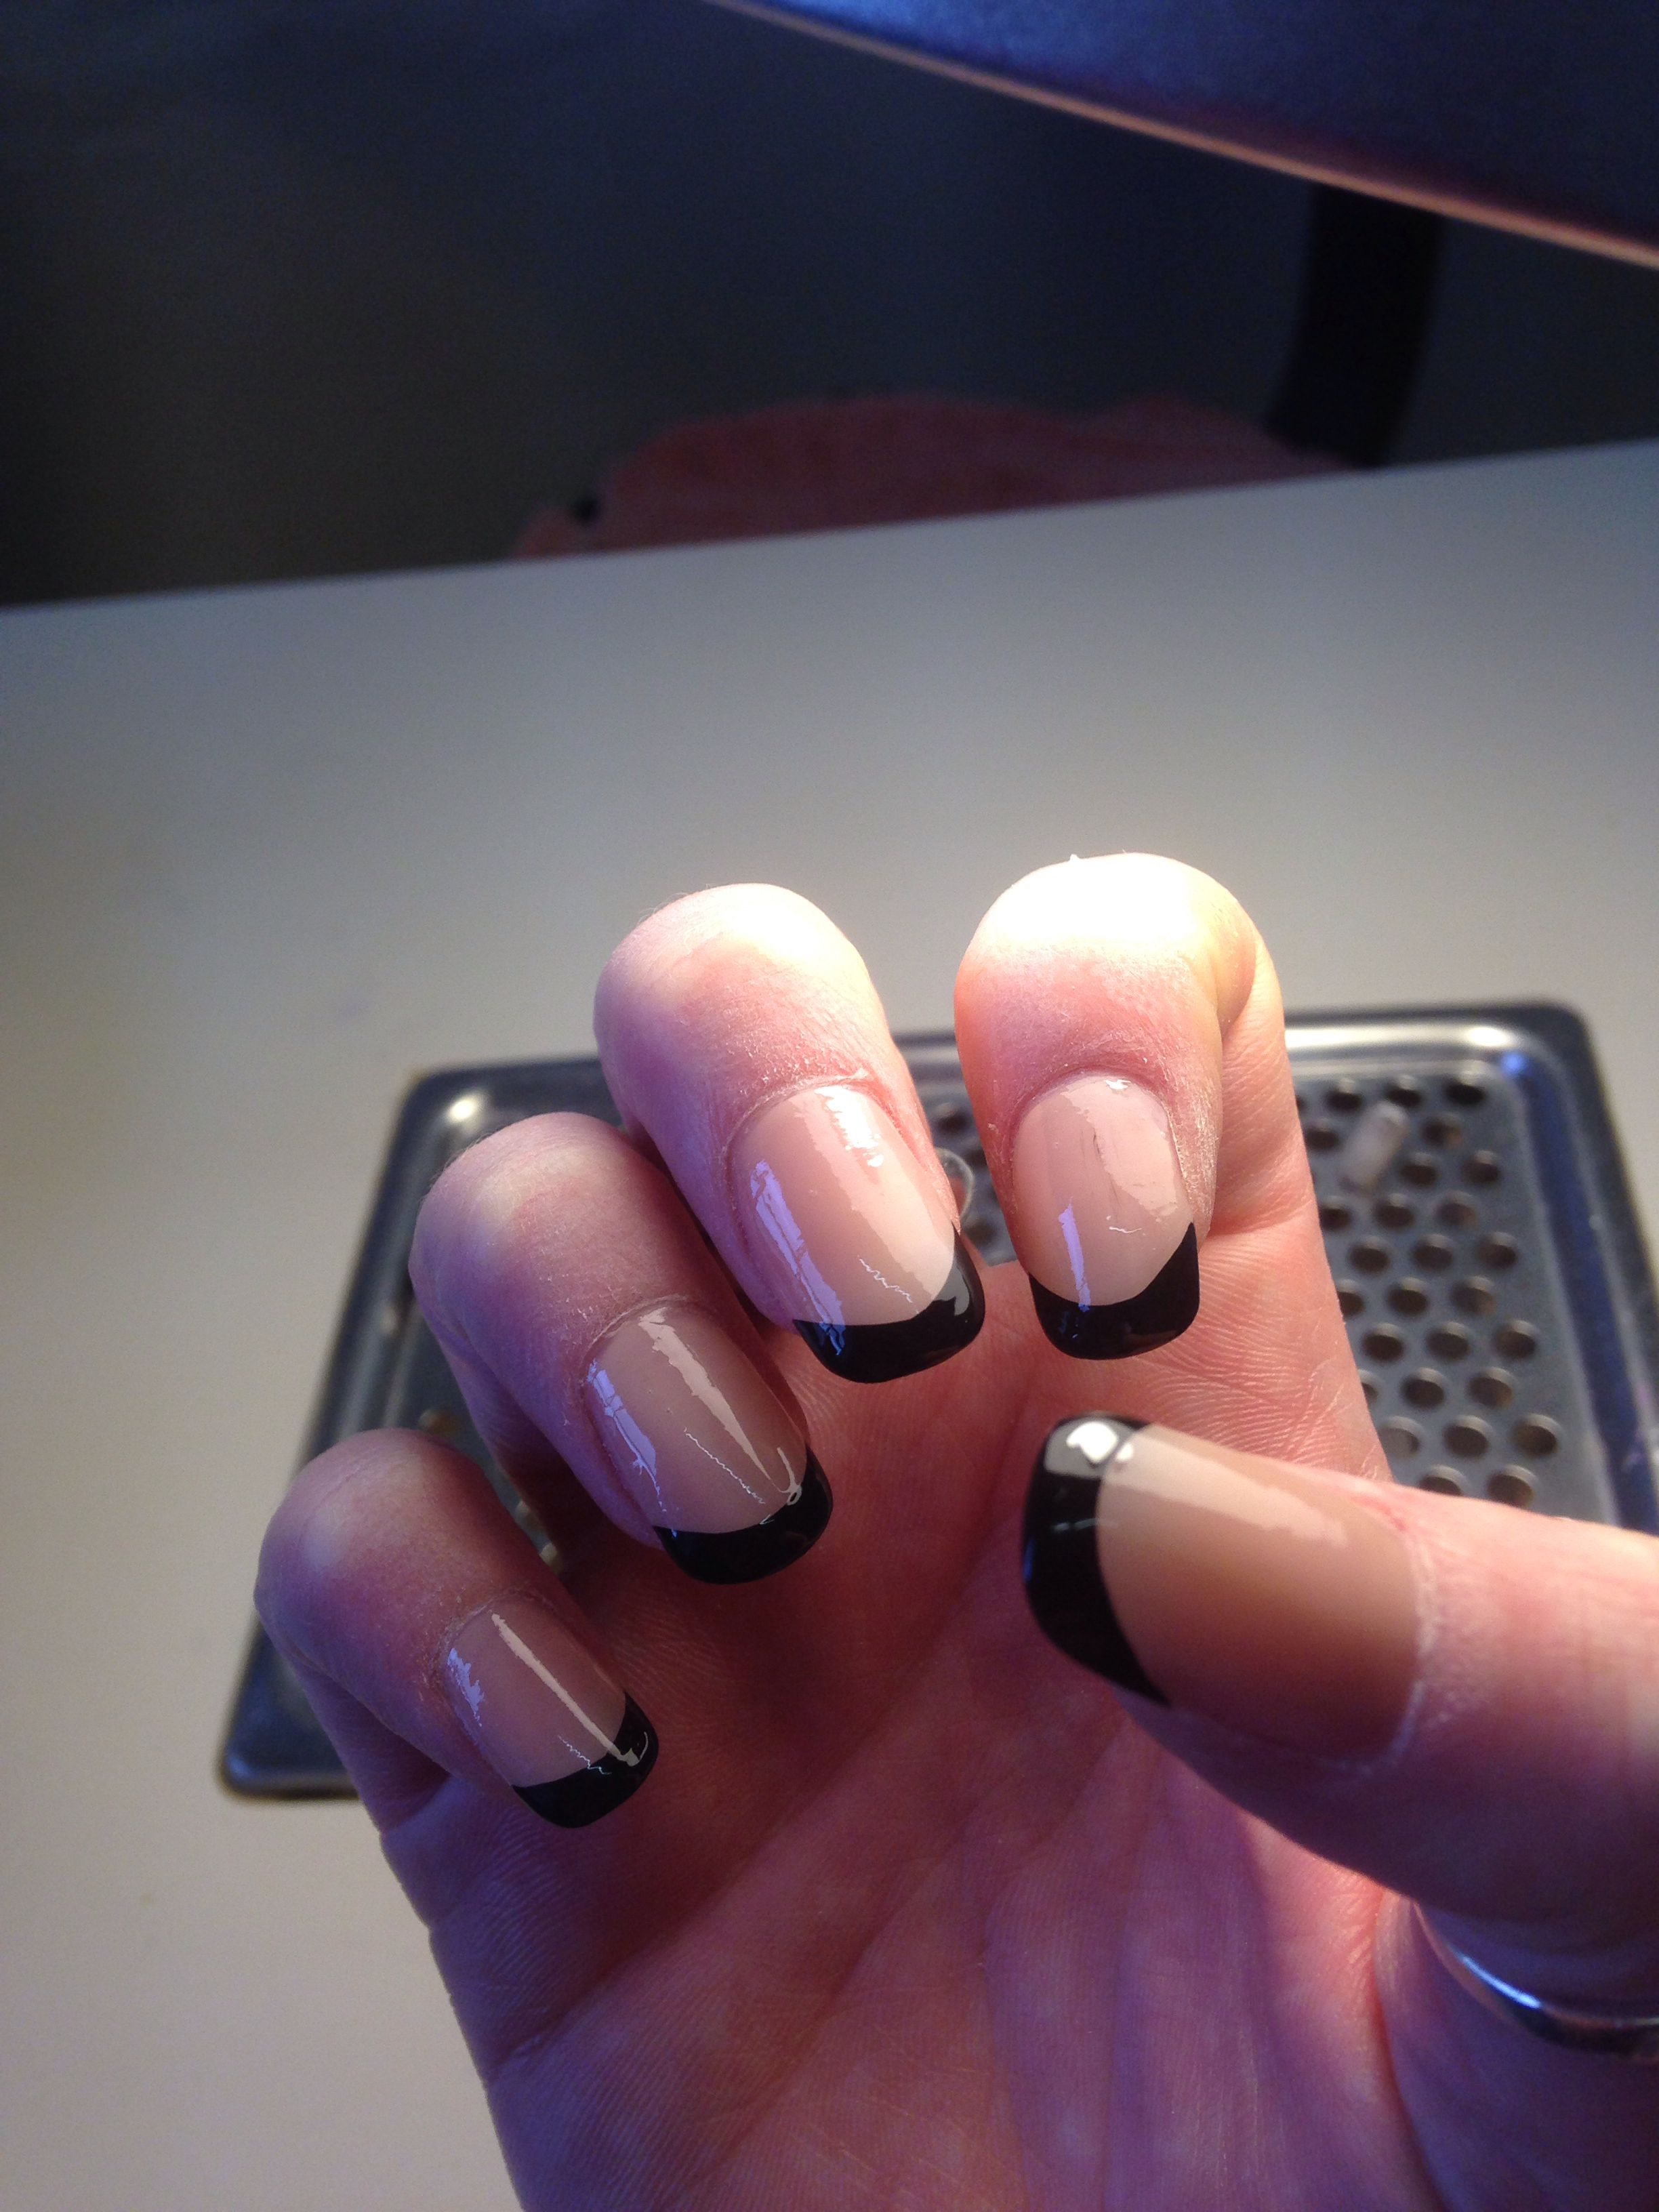 My own nails. Reverse French manicure with black tip. | General ...